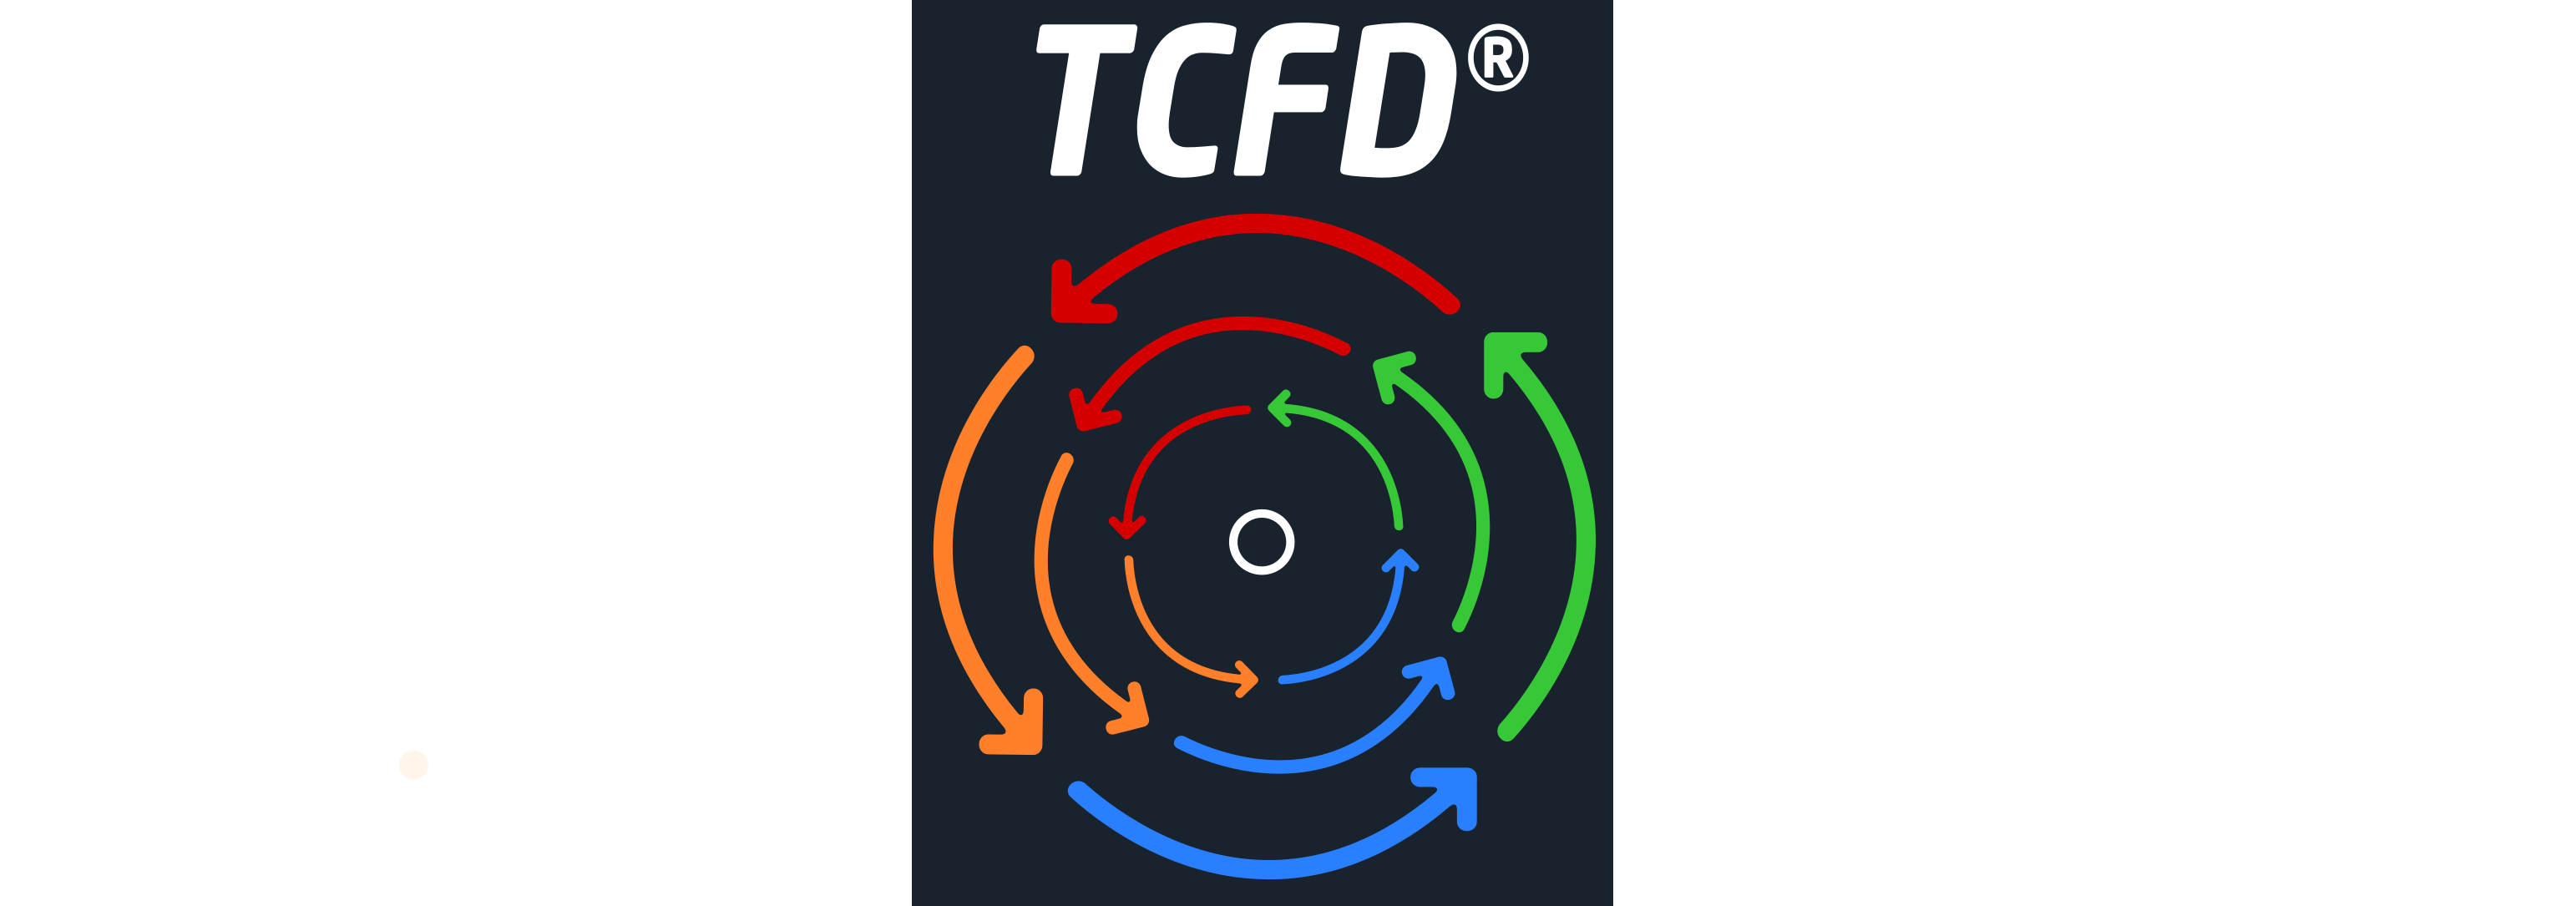 TCFD - Turbomachinery CFD scheme automated workflow